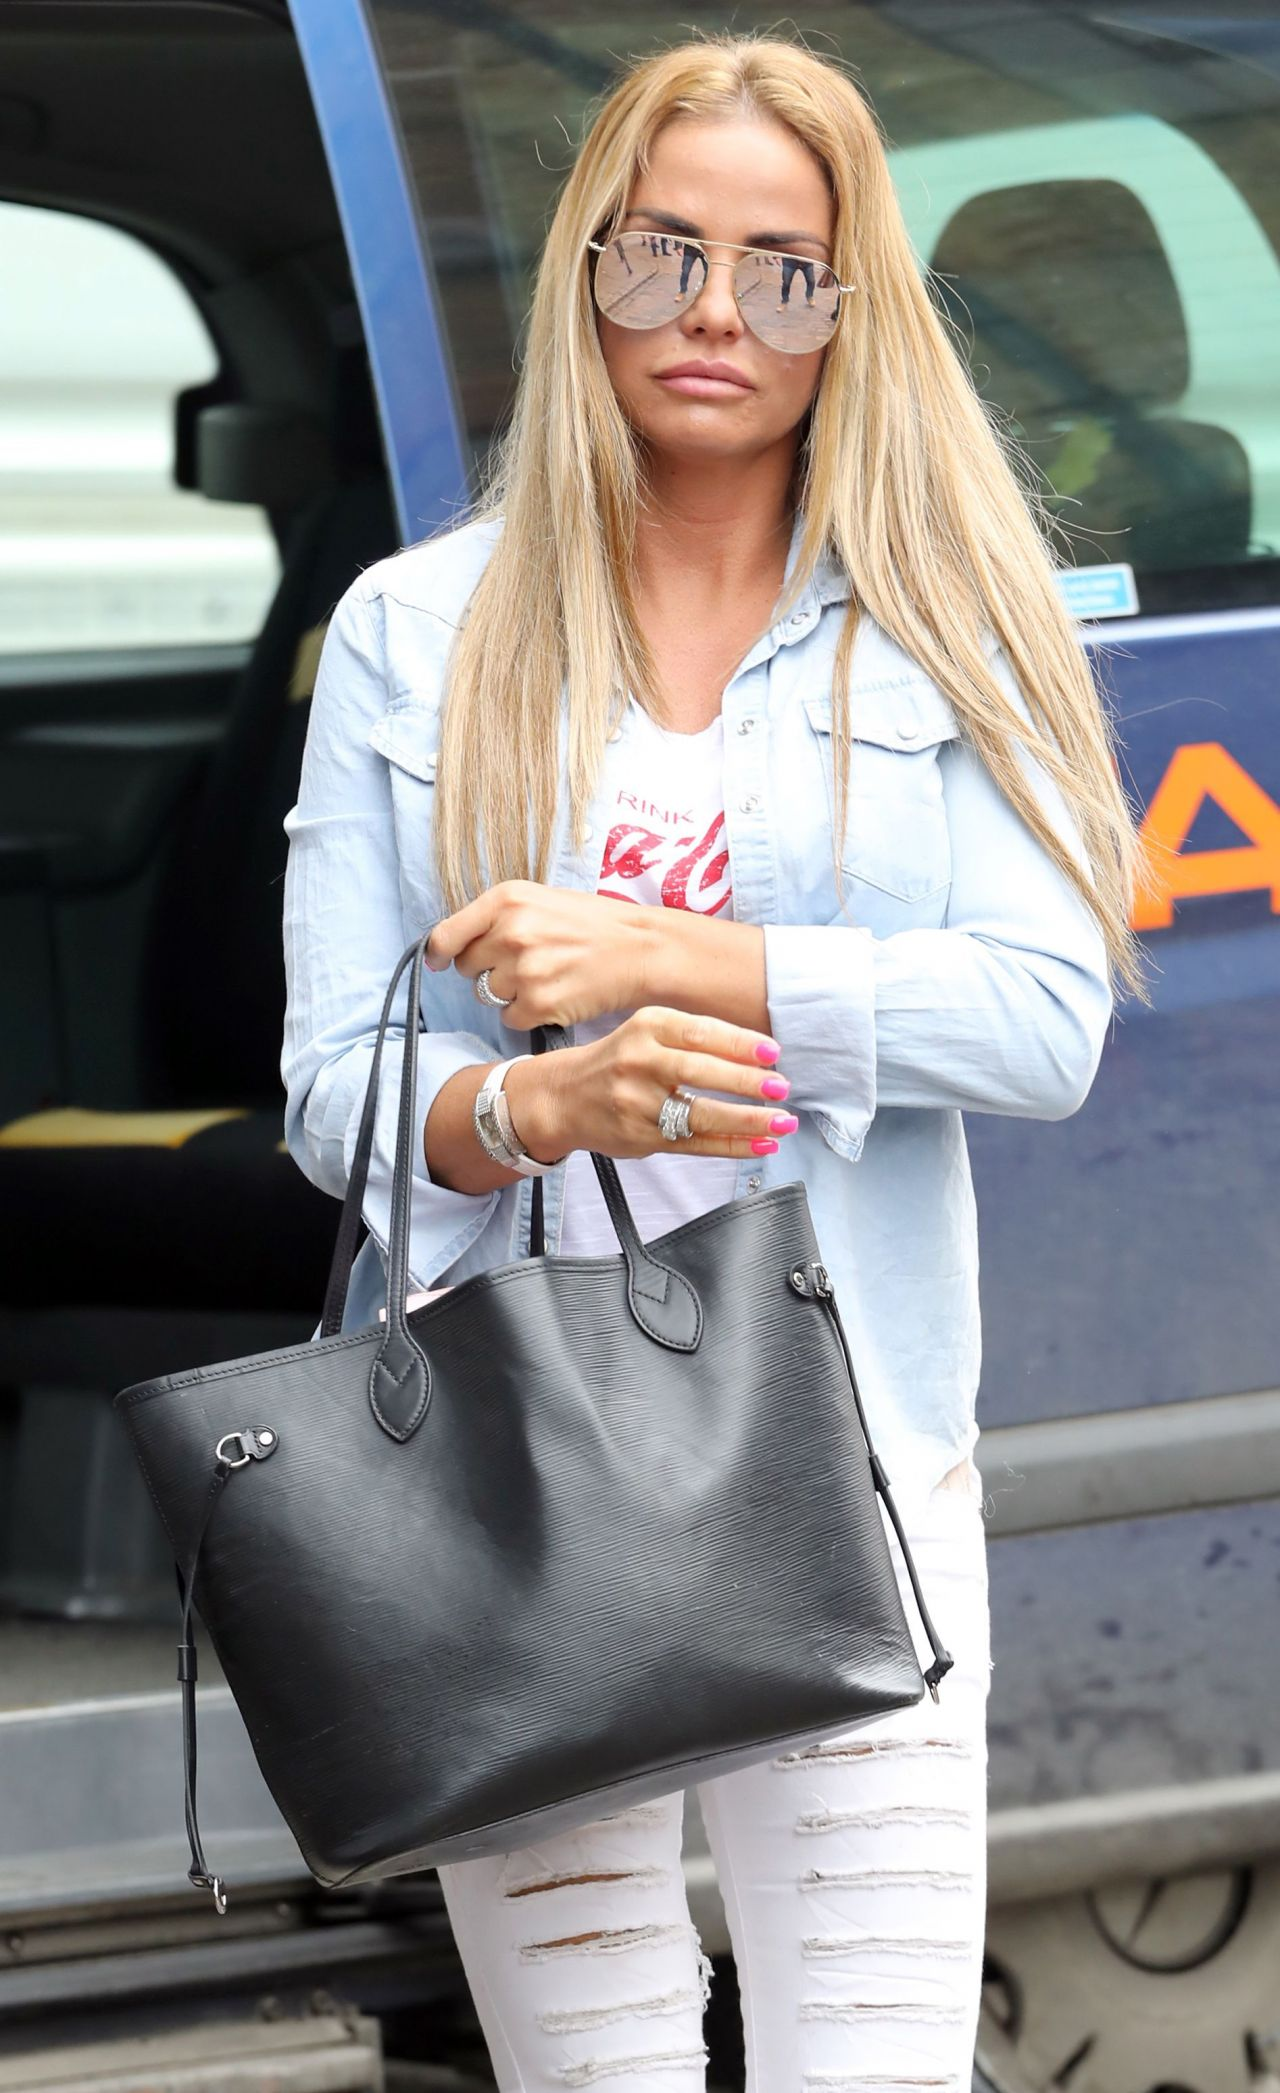 Filming In Progress The Most Beautiful Actress In The World: Katie Price In Casual Attire